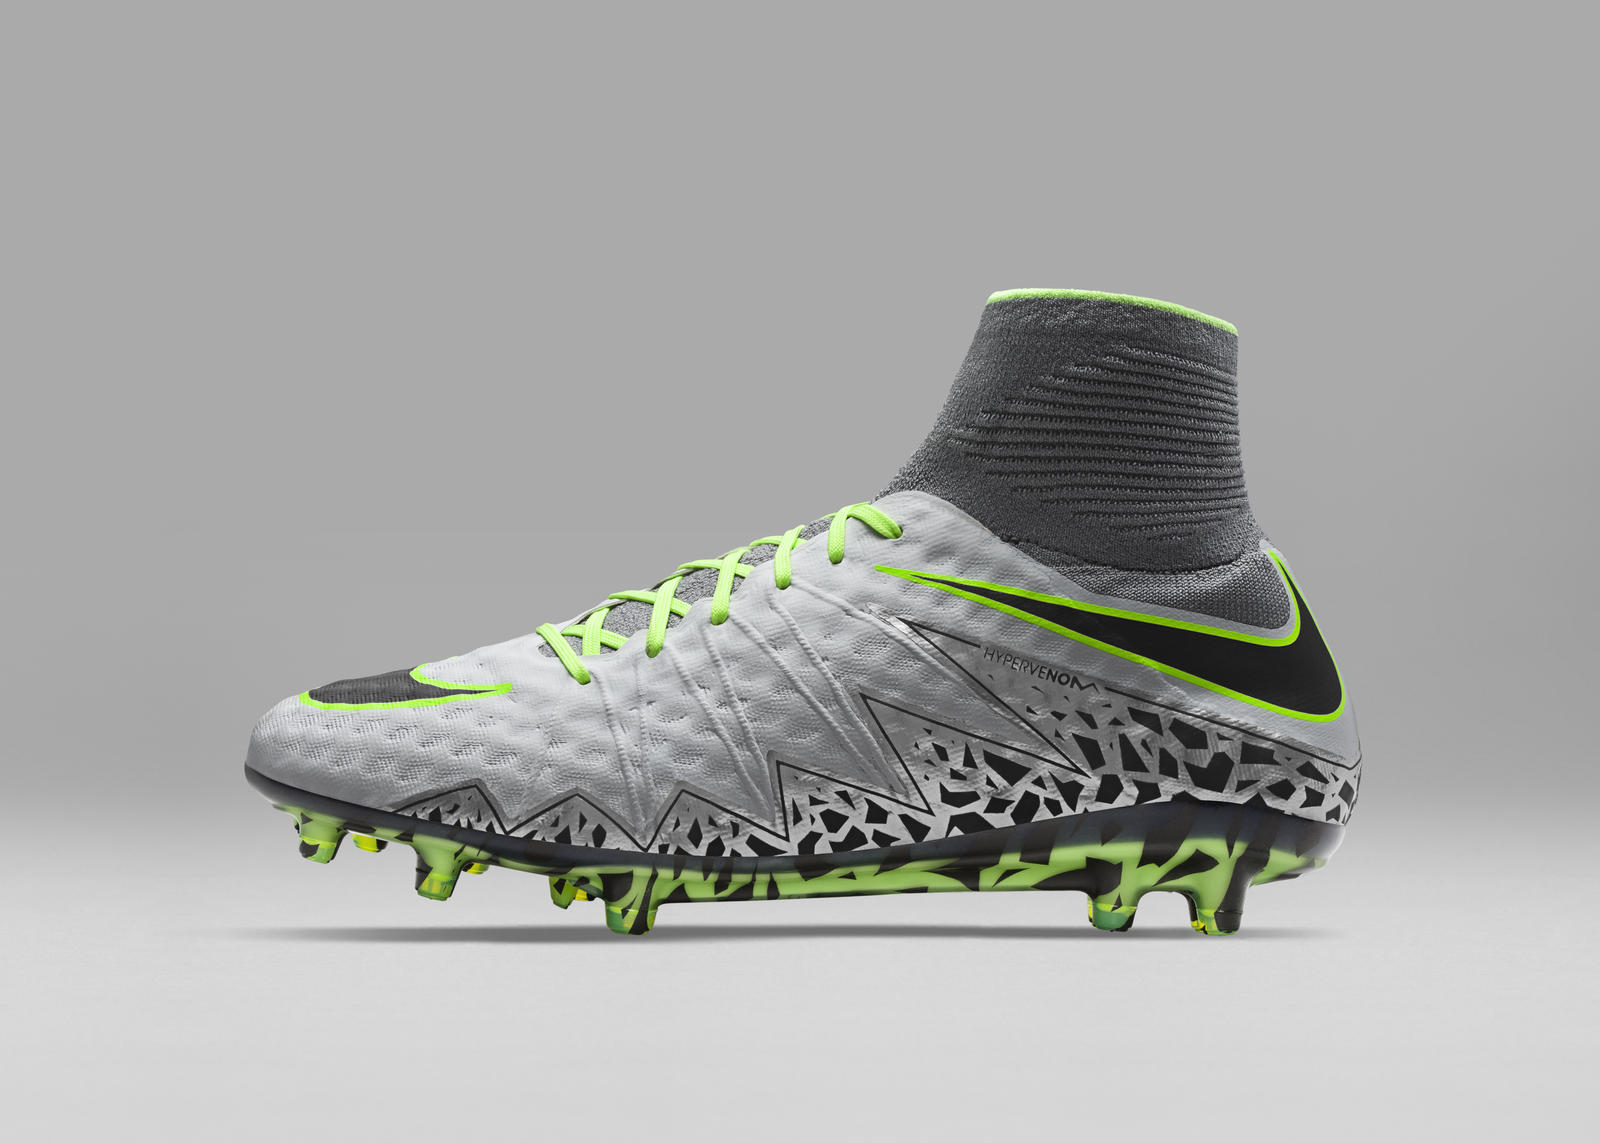 New Soccer Shoes Coming Out